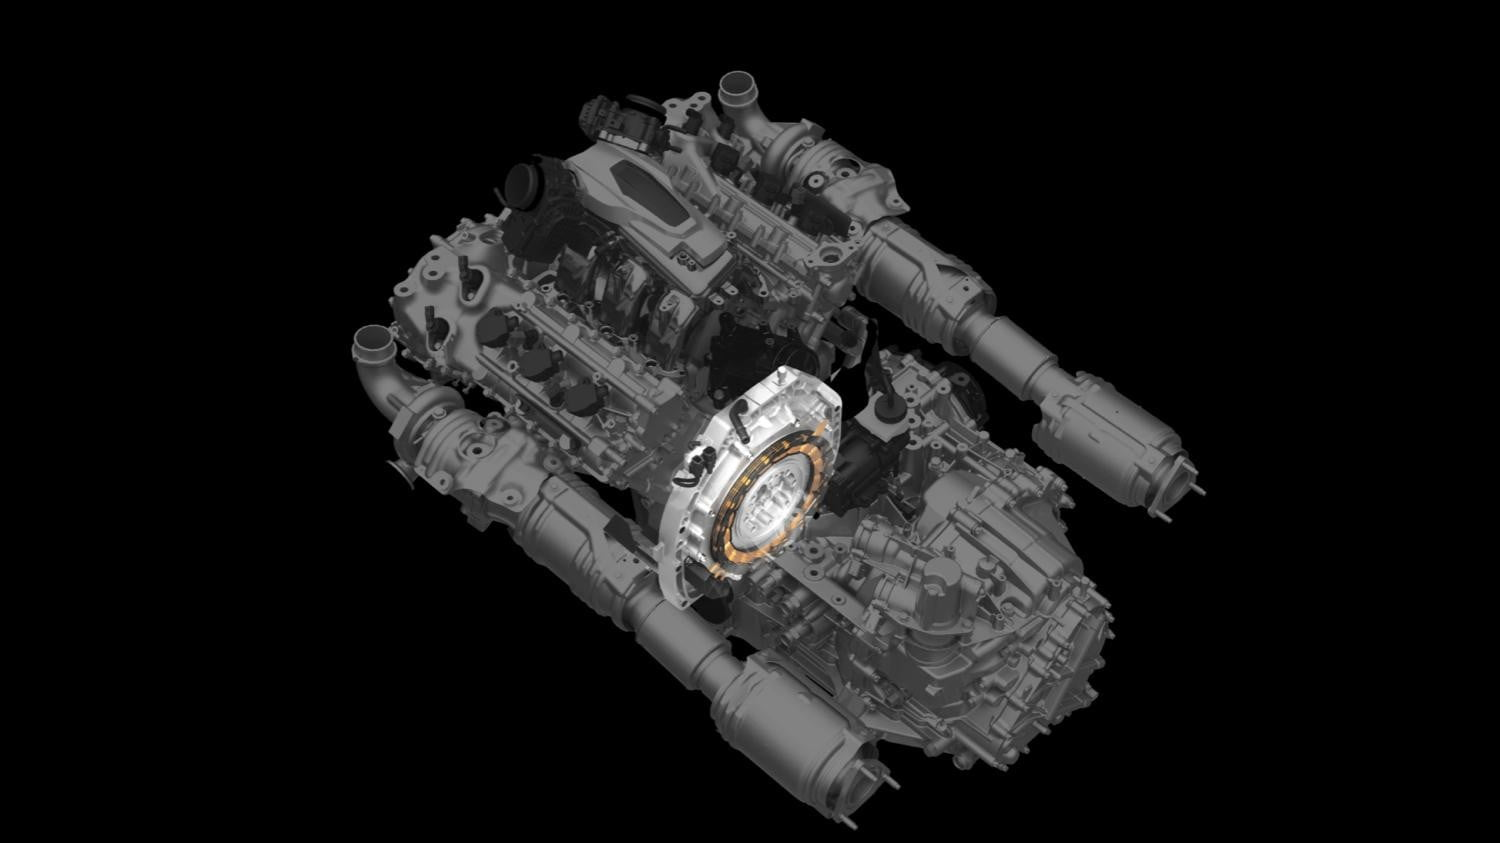 2016 Acura NSX Rear Direct-Drive Electric Motor